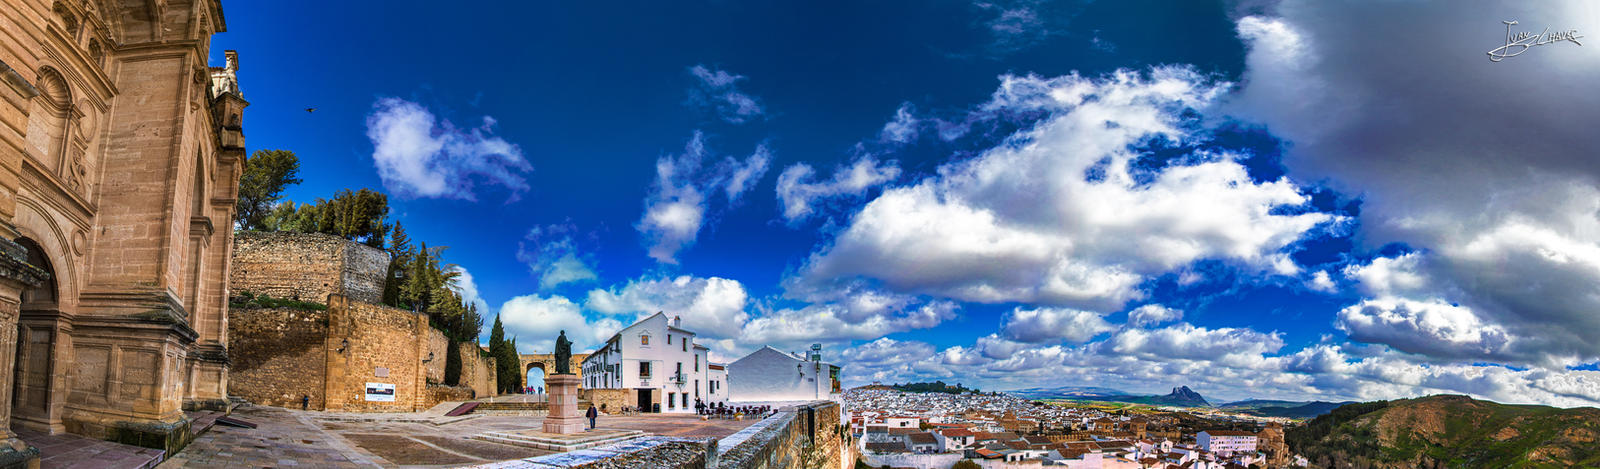 Antequera by JuanChaves